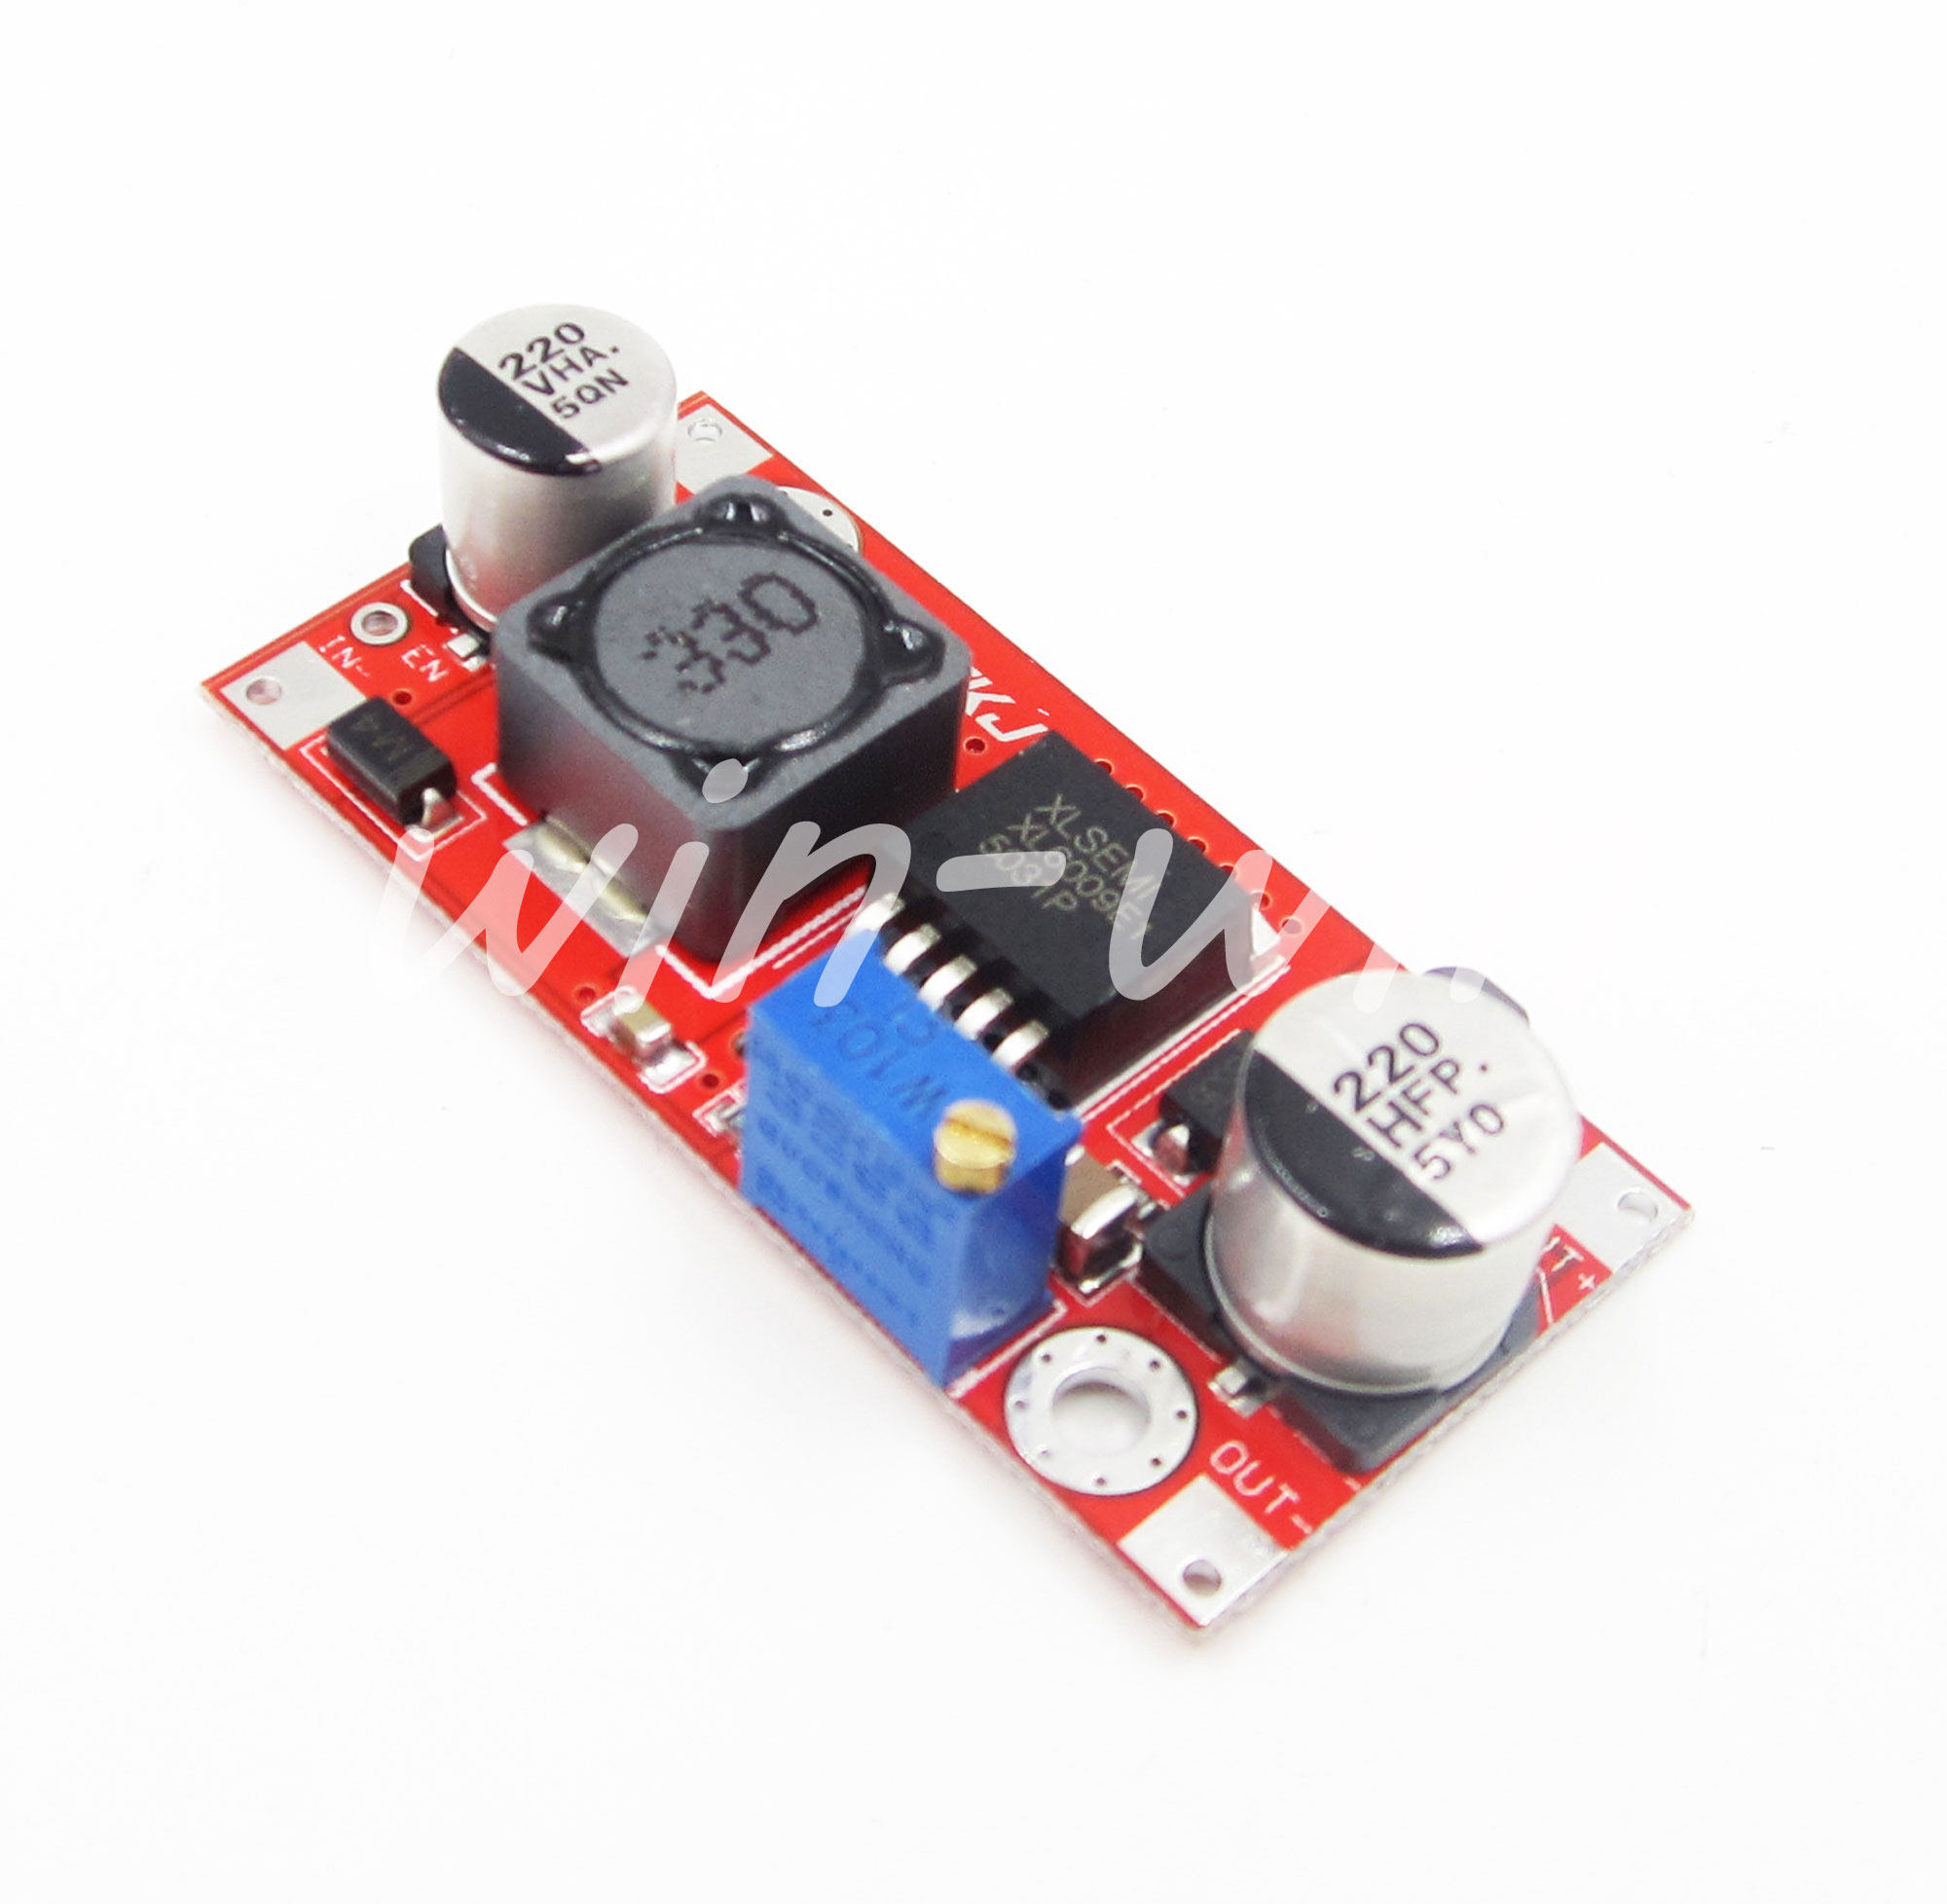 Dc 6 24v 12v To 5v Usb Output Charger Step Down Power Module Switching Regulators Using Lm2575 And Lm2577 Xl6009 Adjustable Up Boost Converter Replace Supply